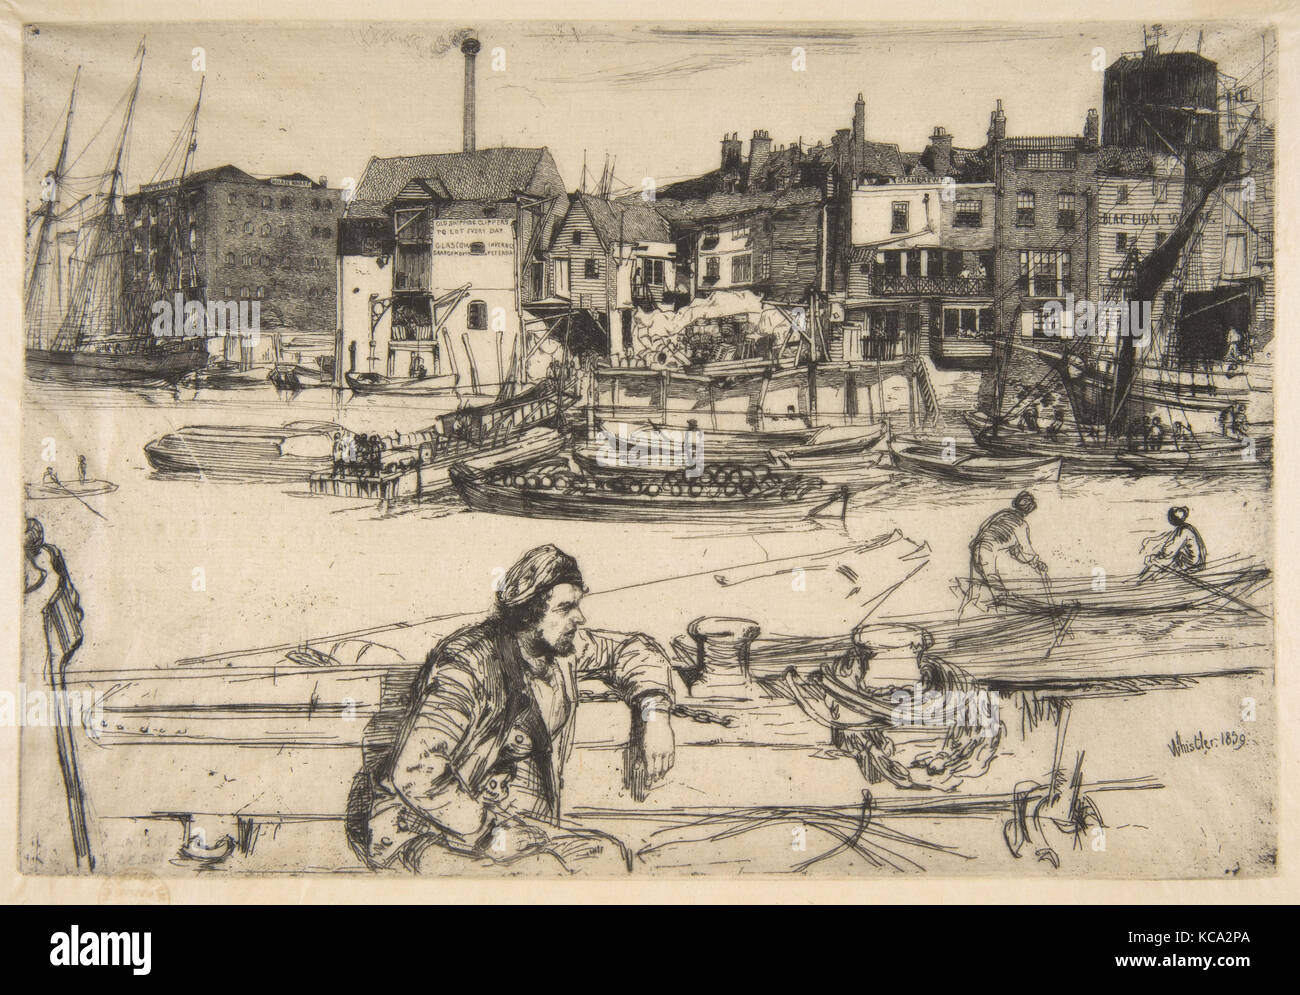 Black Lion Wharf, 1859, Etching, Plate: 5 7/8 × 8 11/16 in. (15 × 22.1 cm), Prints, James McNeill Whistler - Stock Image